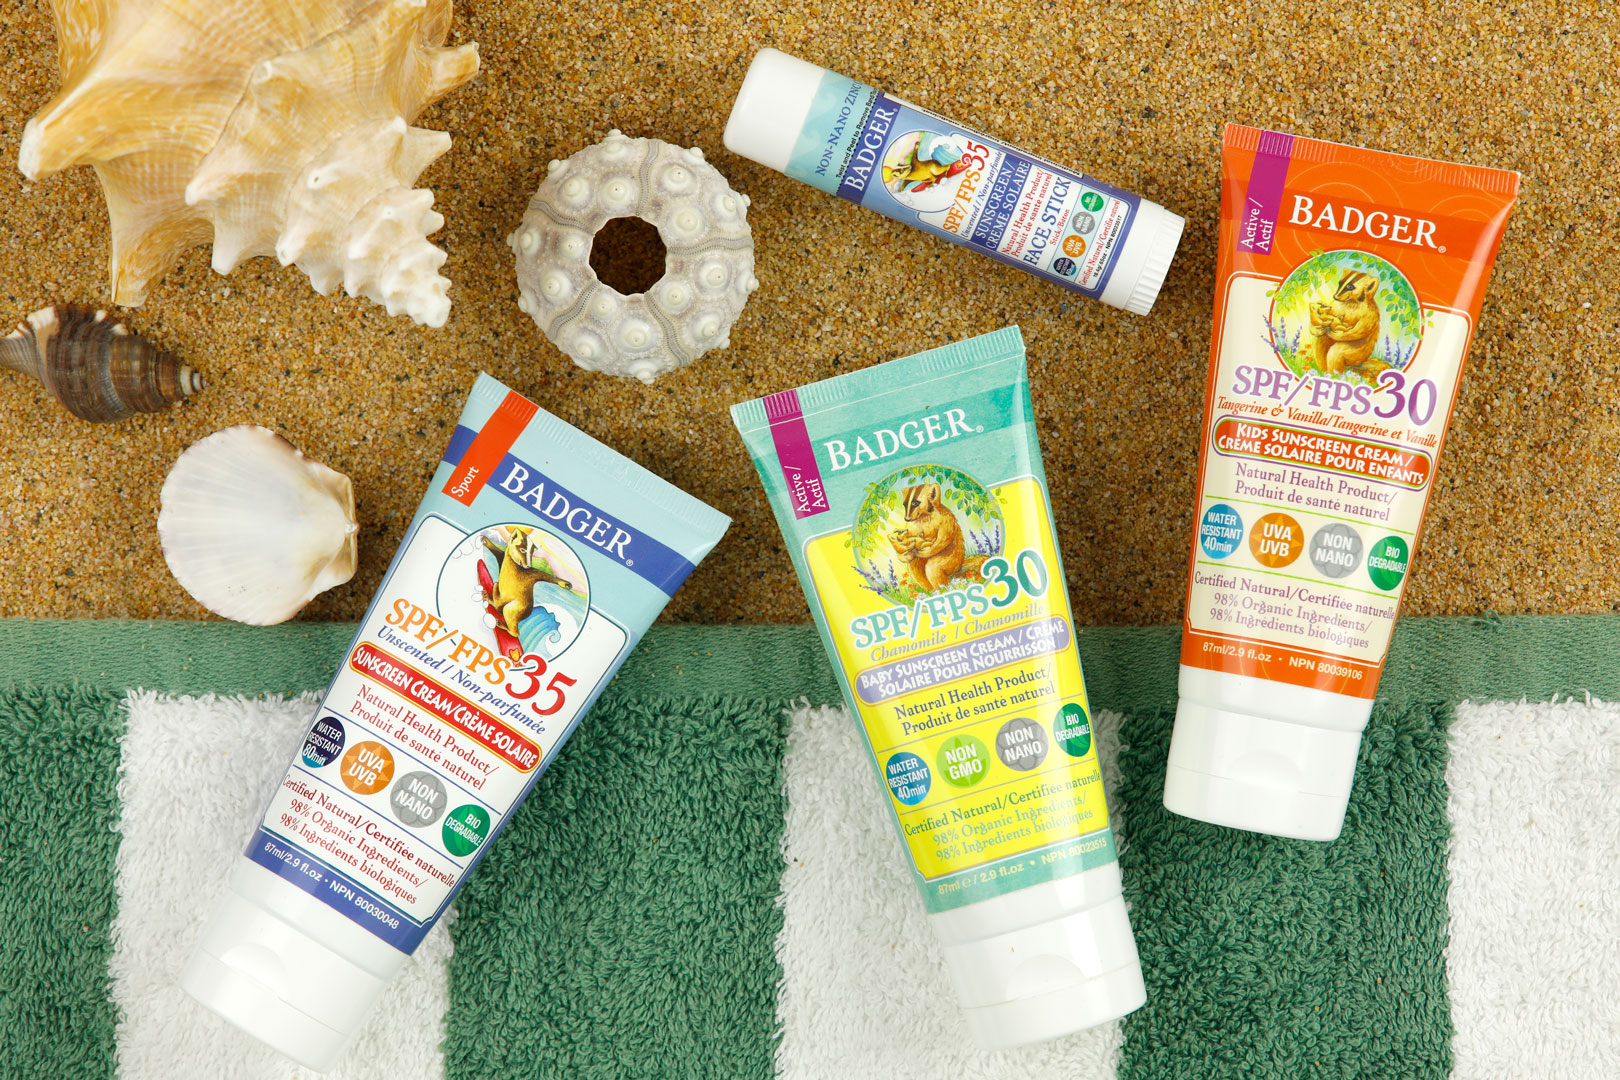 Four suncreen products on a green and brown background